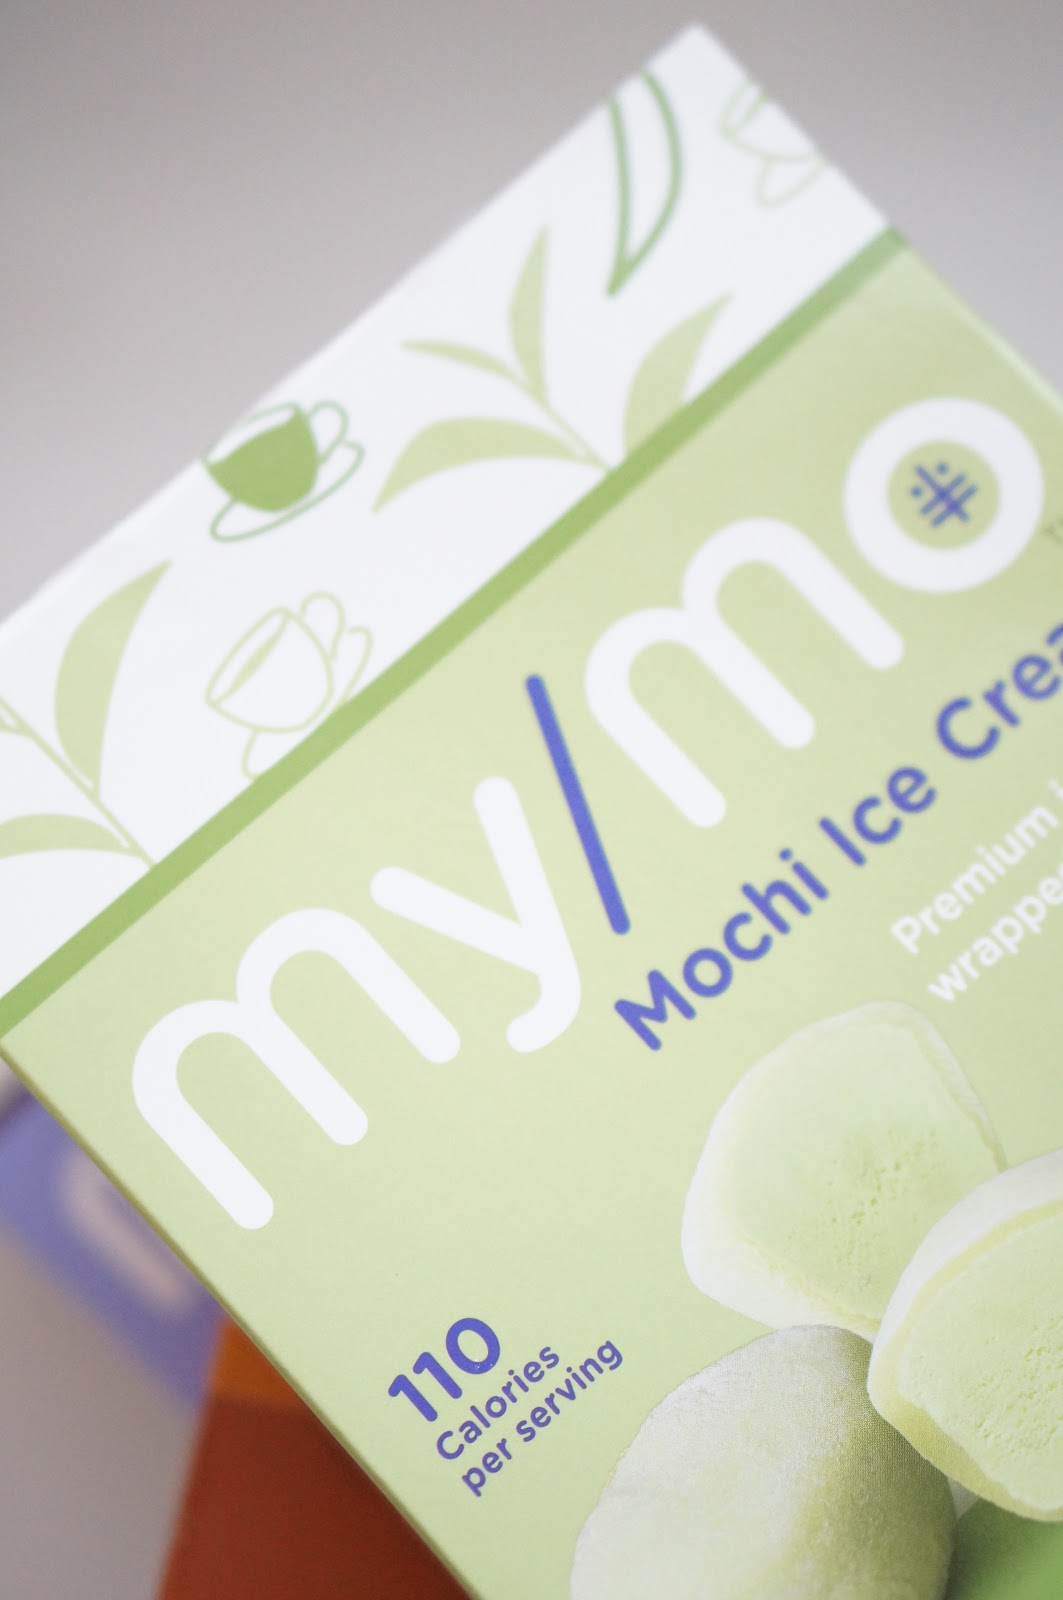 Popular North Carolina style blogger shares how she is snacking this summer with My/Mo Mochi Ice Cream. Click here to read about this delicious snack!